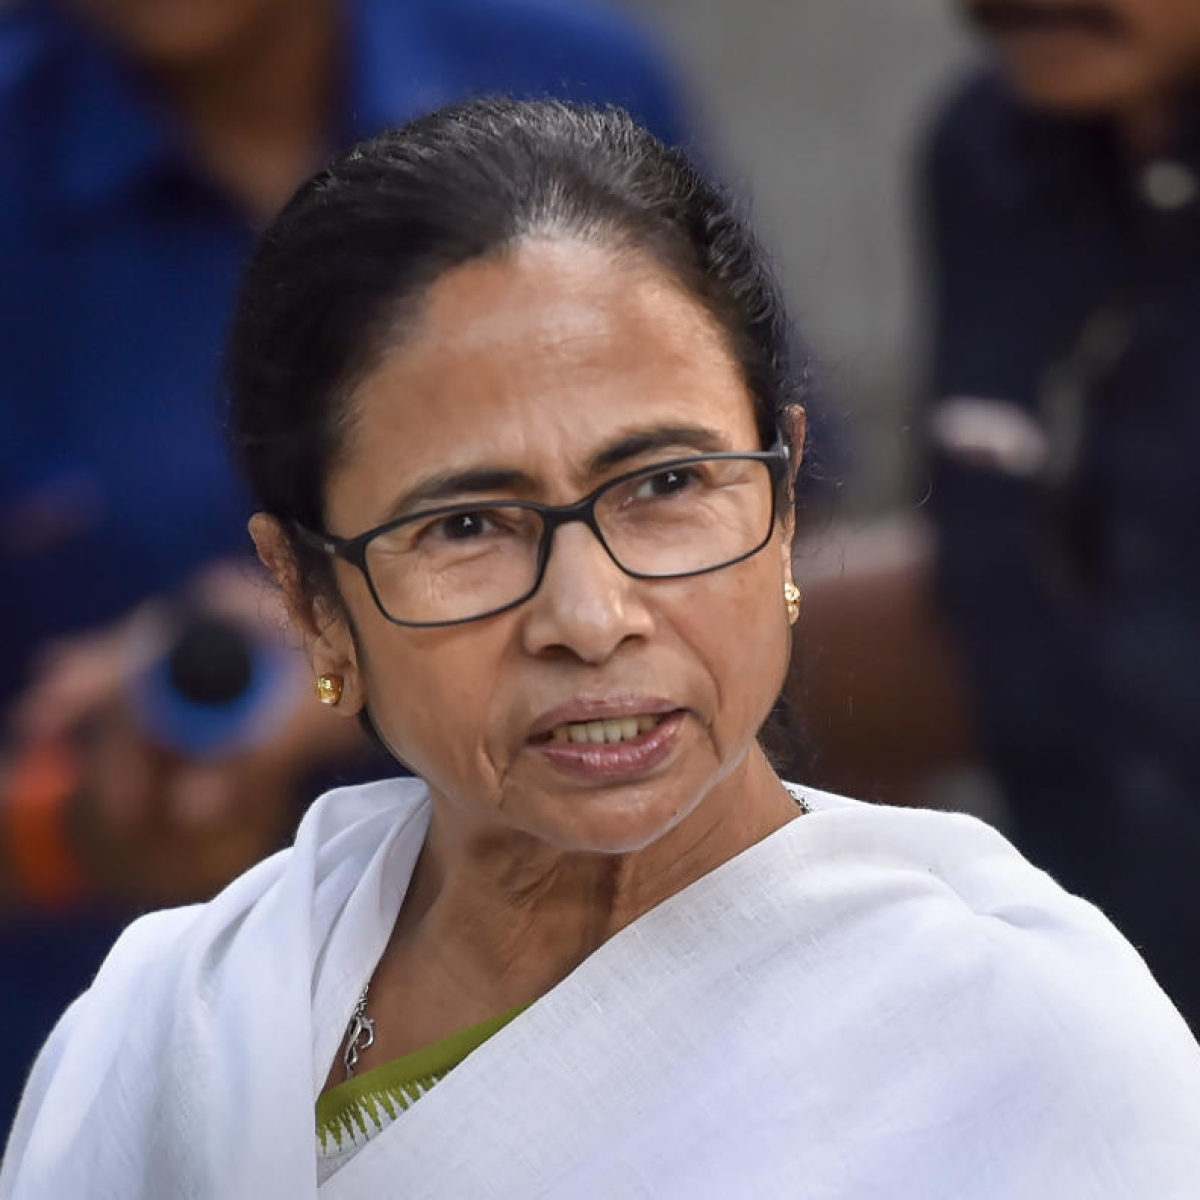 West Bengal polls: CM Mamata Banerjee slams EC for helping BJP gain assembly seats